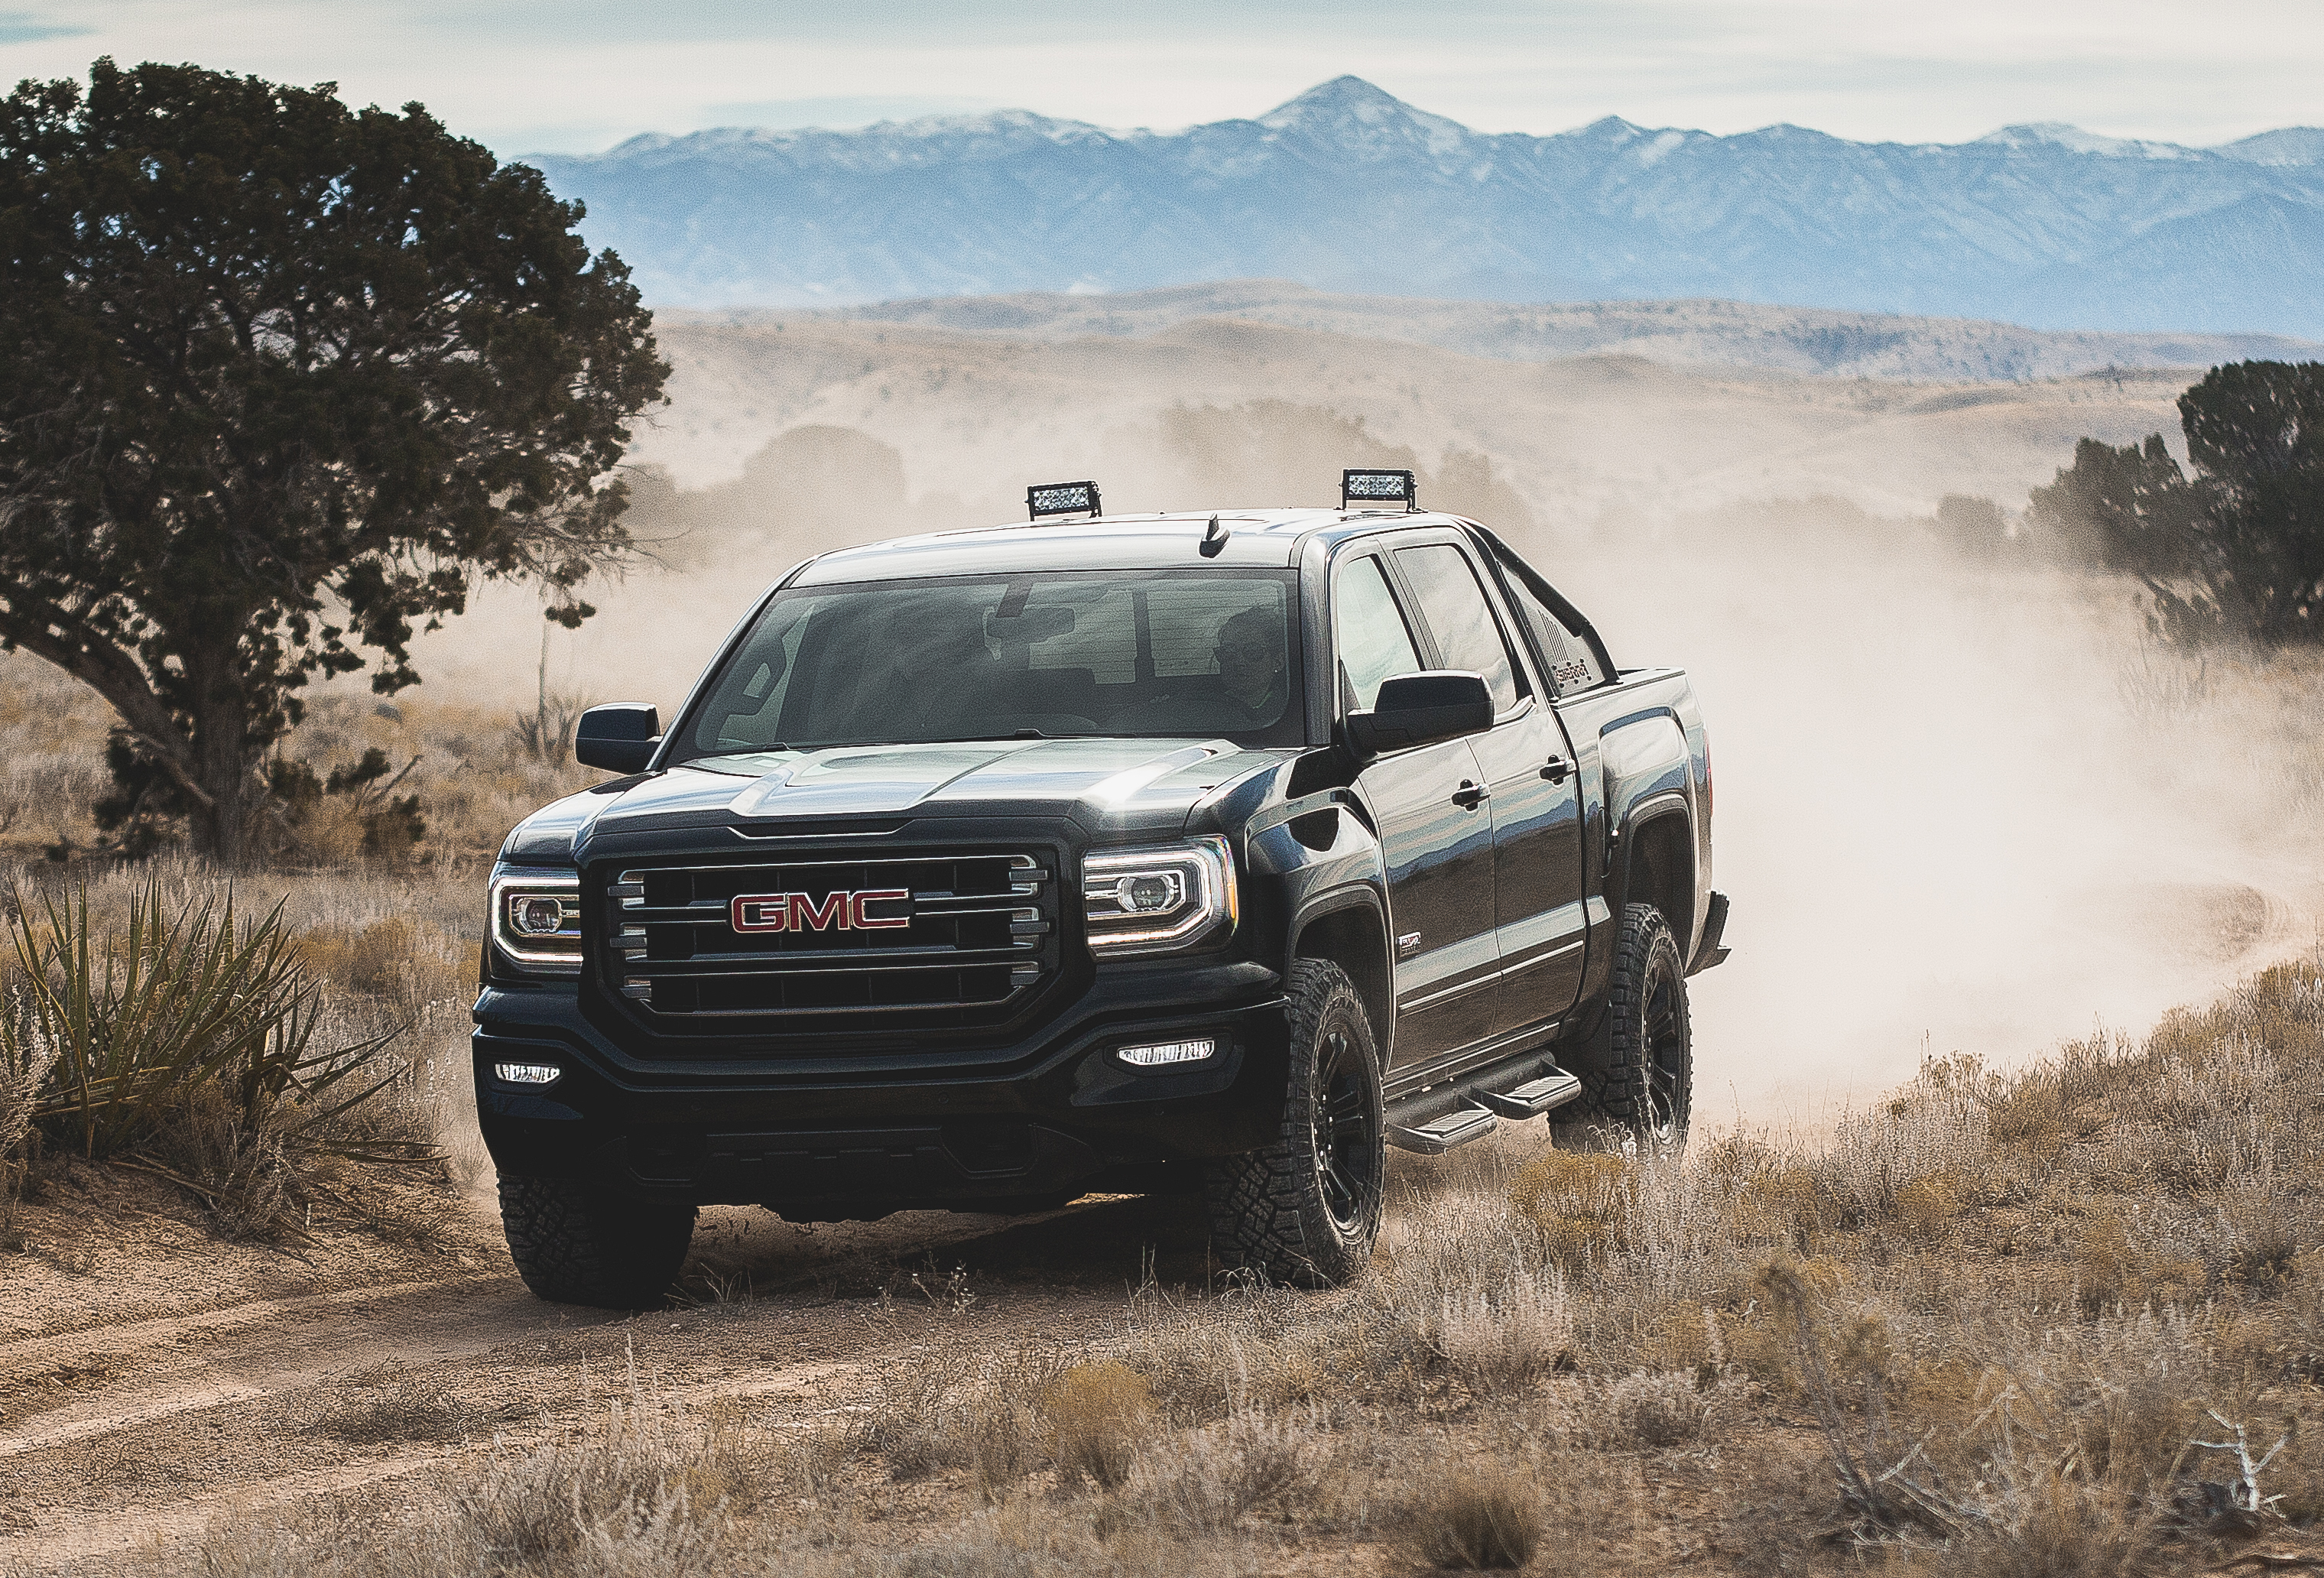 Meet the New GMC Sierra All Terrain X - GM Inside News